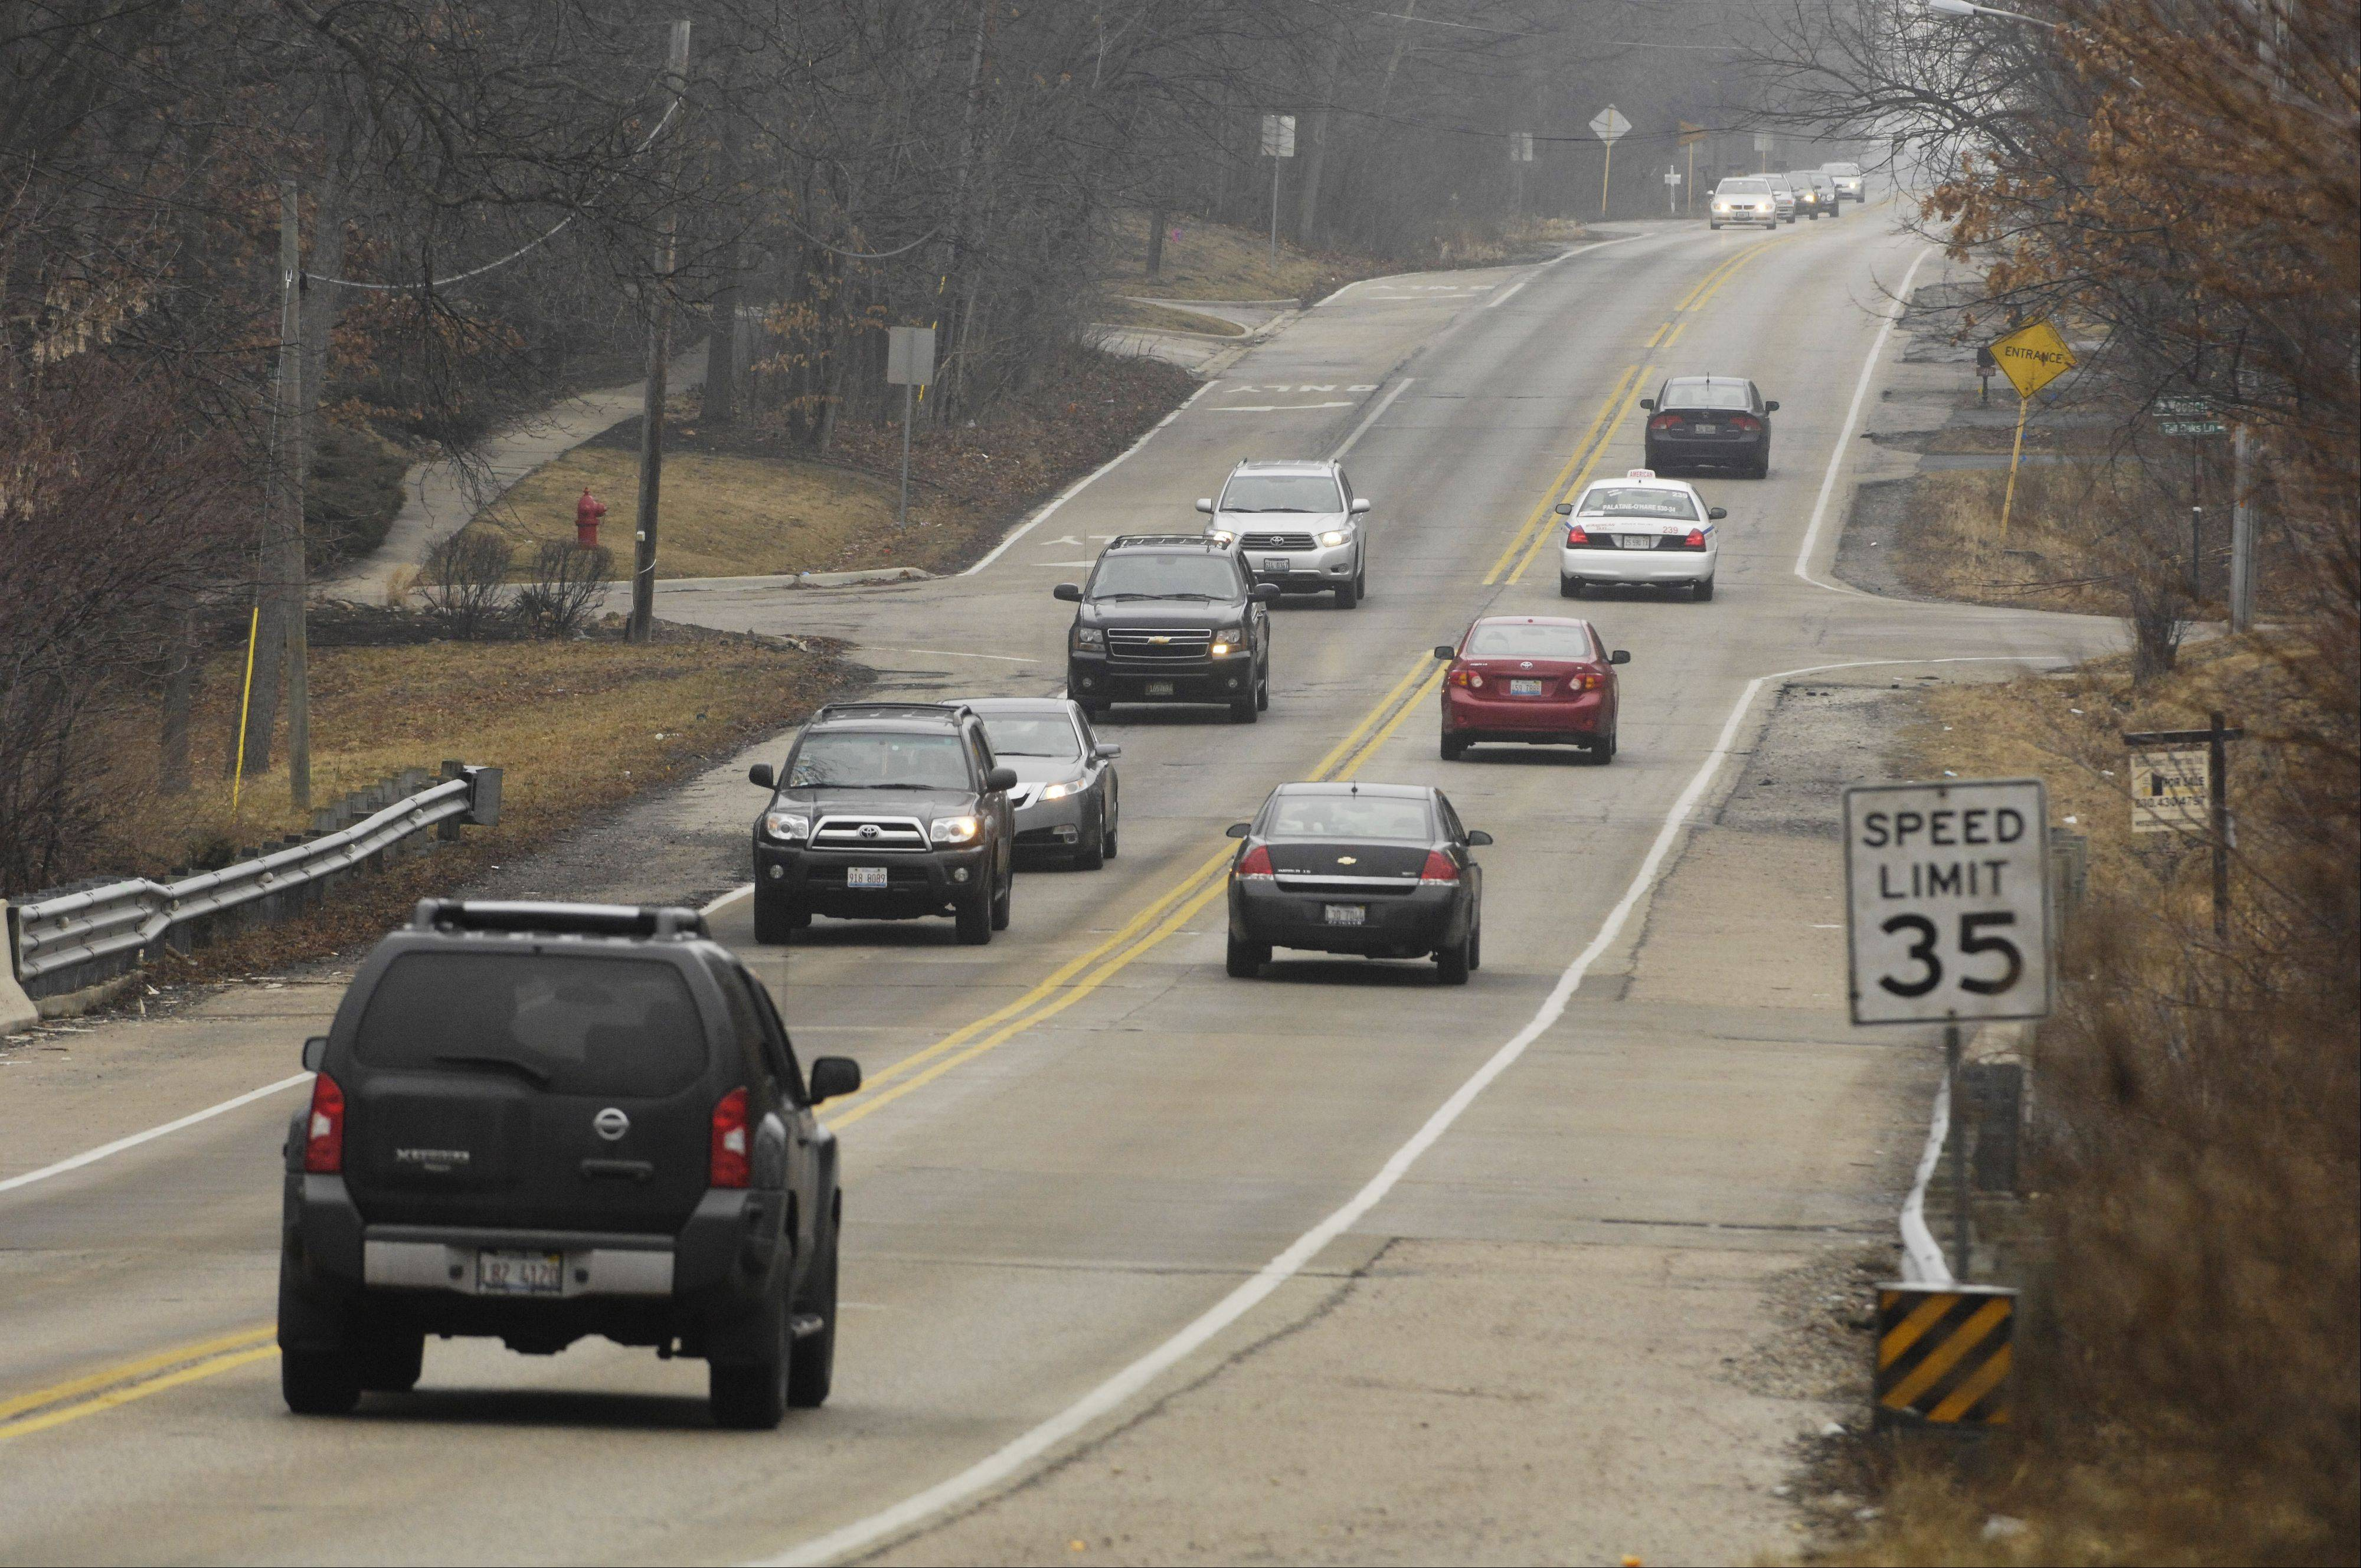 Rolling Meadows is holding a public meeting this week to discuss options and answer residents' questions about plans to expand Meacham Road between Emerson Avenue and Algonquin Road. One possibility, to widen the two-lane roadway to five lanes, has met with opposition from residents and some city officials.